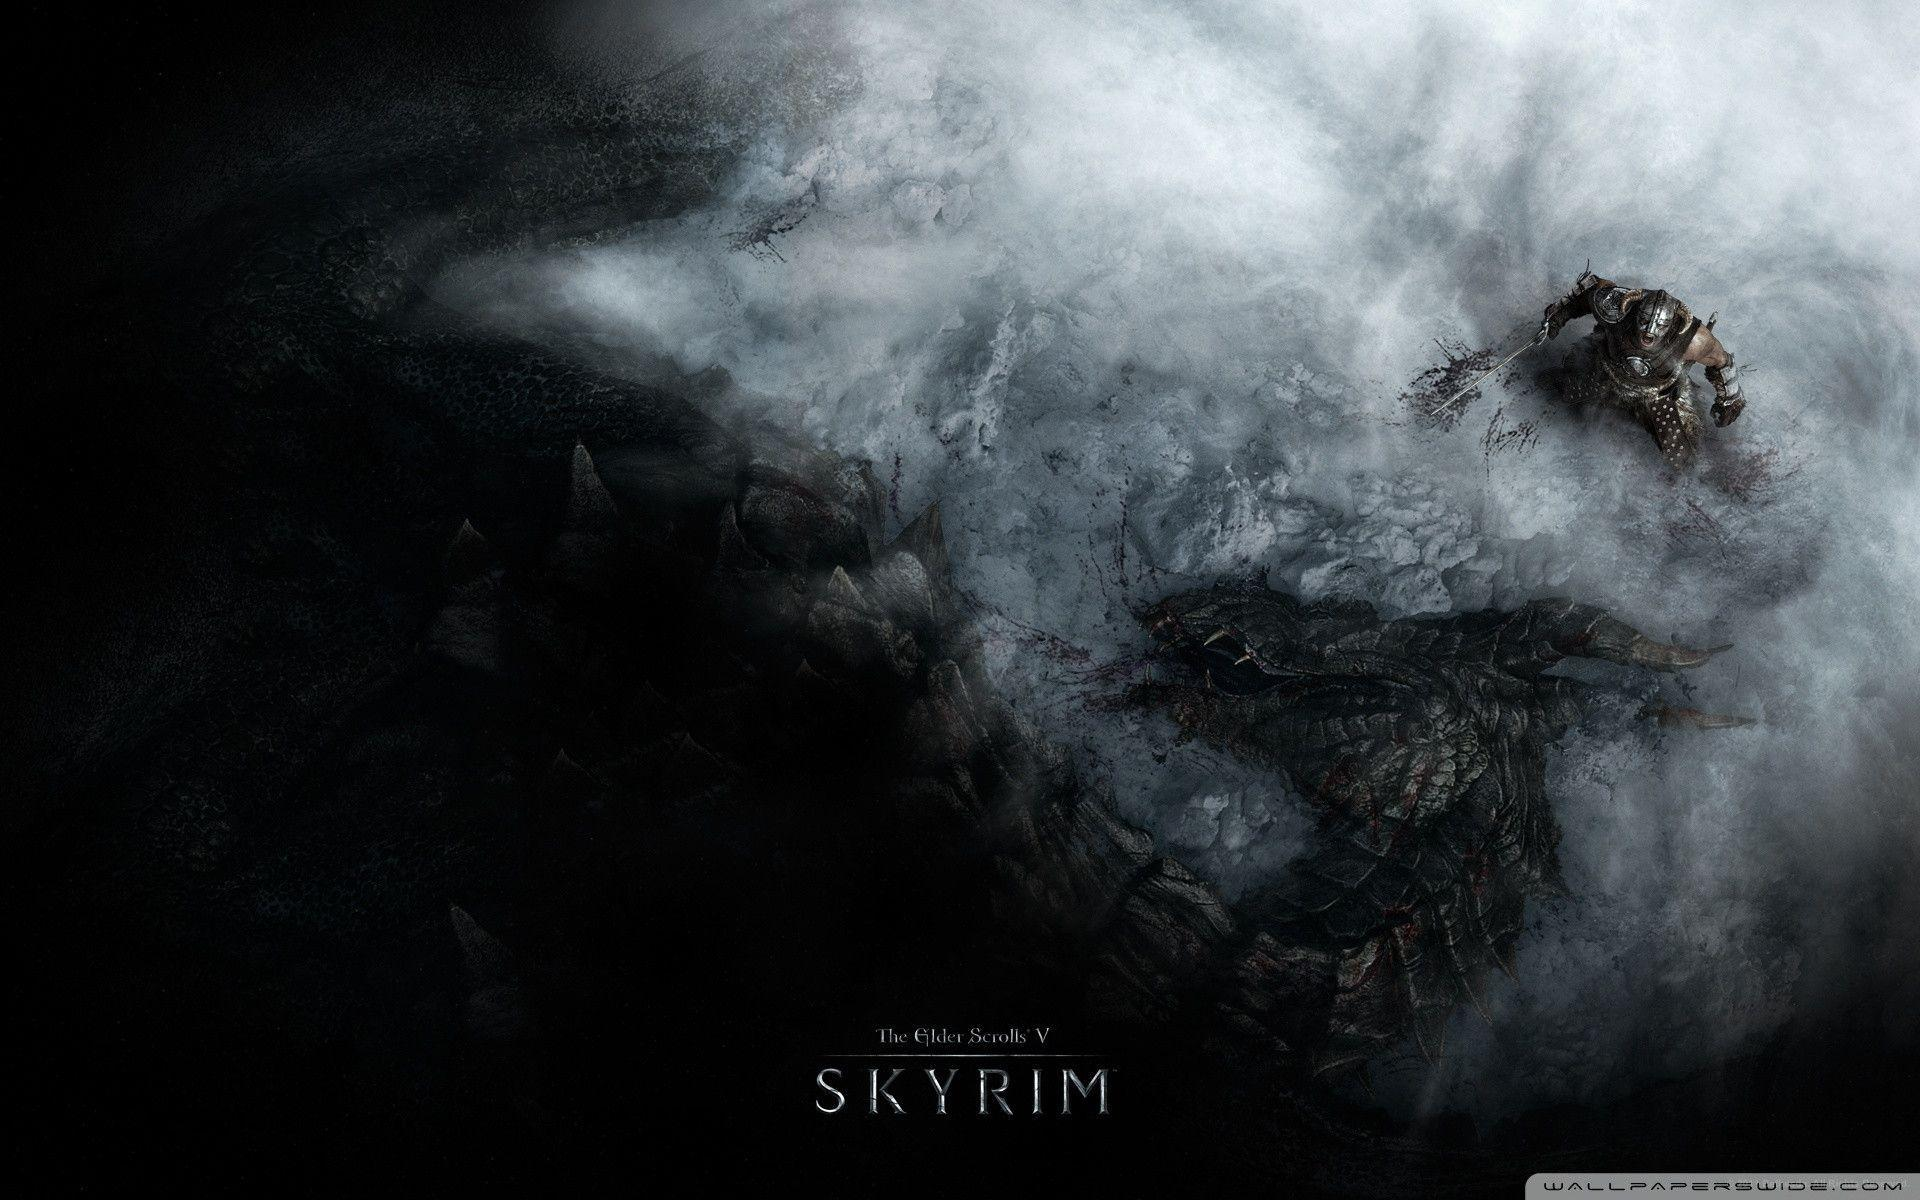 skyrim hd wallpapers 1366x768 - photo #12